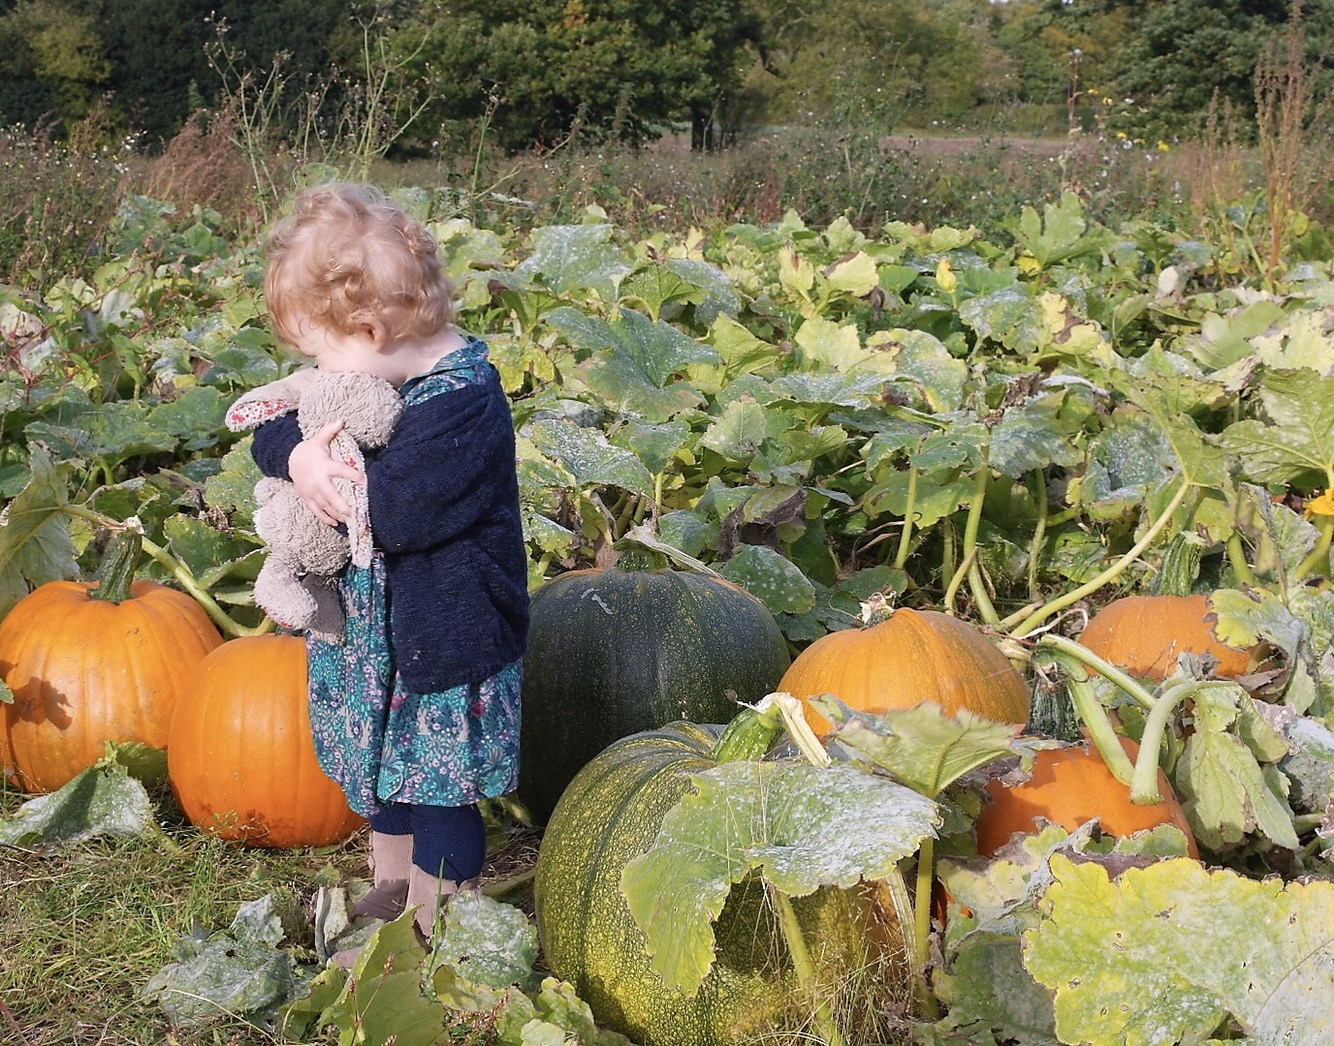 Pumpkin fields and snuggles with bunny